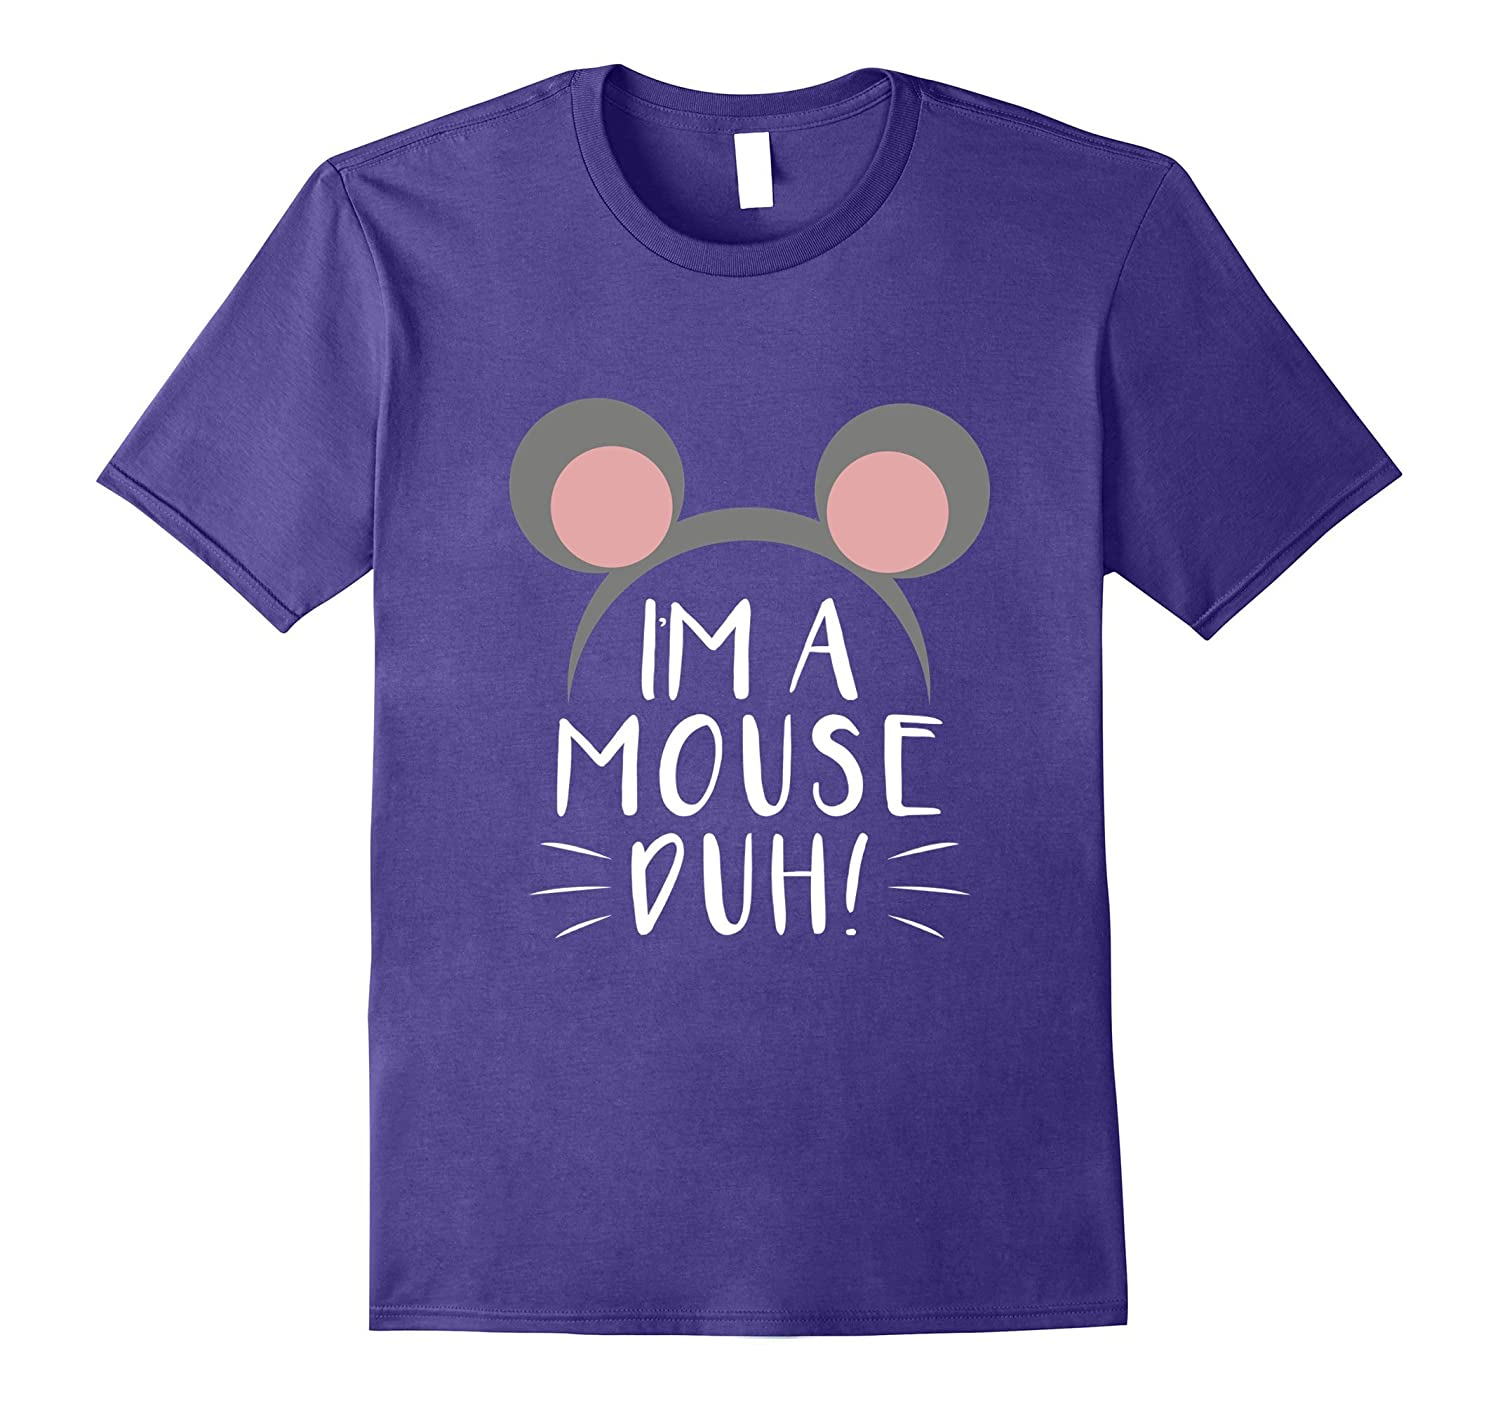 Im A Mouse Duh Cute Halloween Tshirt Idea-FL